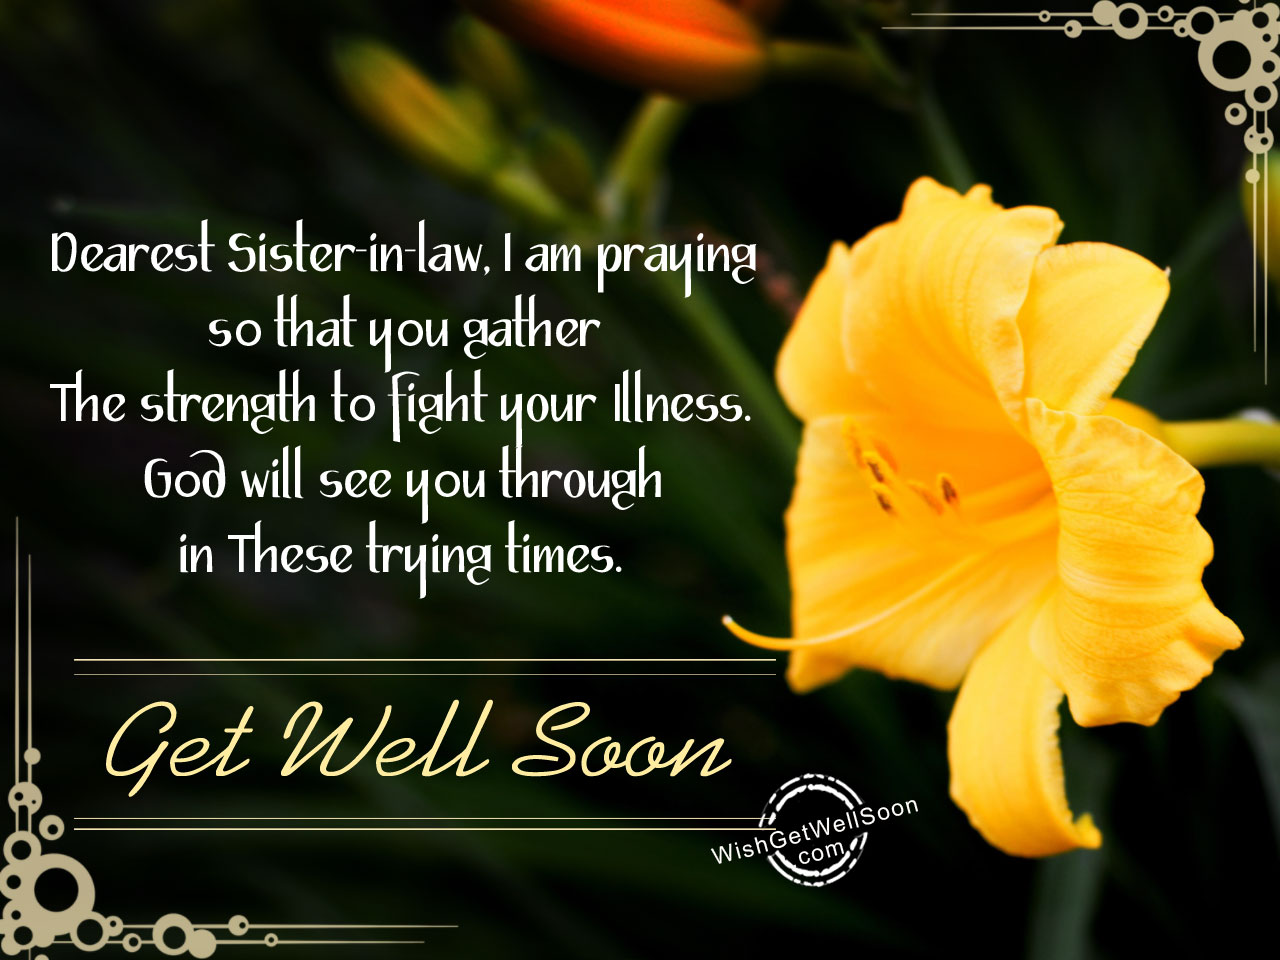 Sister Get Well Prayers Soon